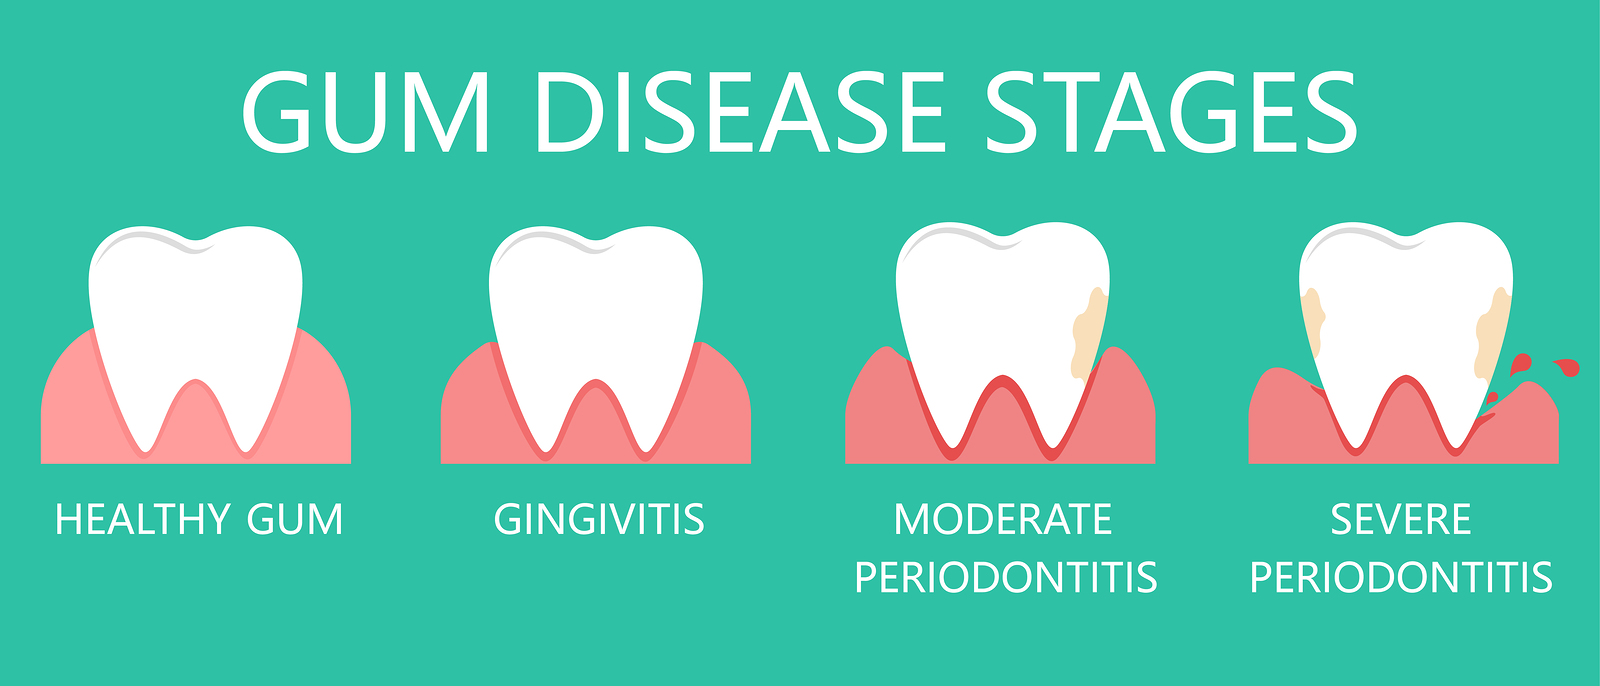 The stages of gum disease, the stage of development of dental periodontitis.